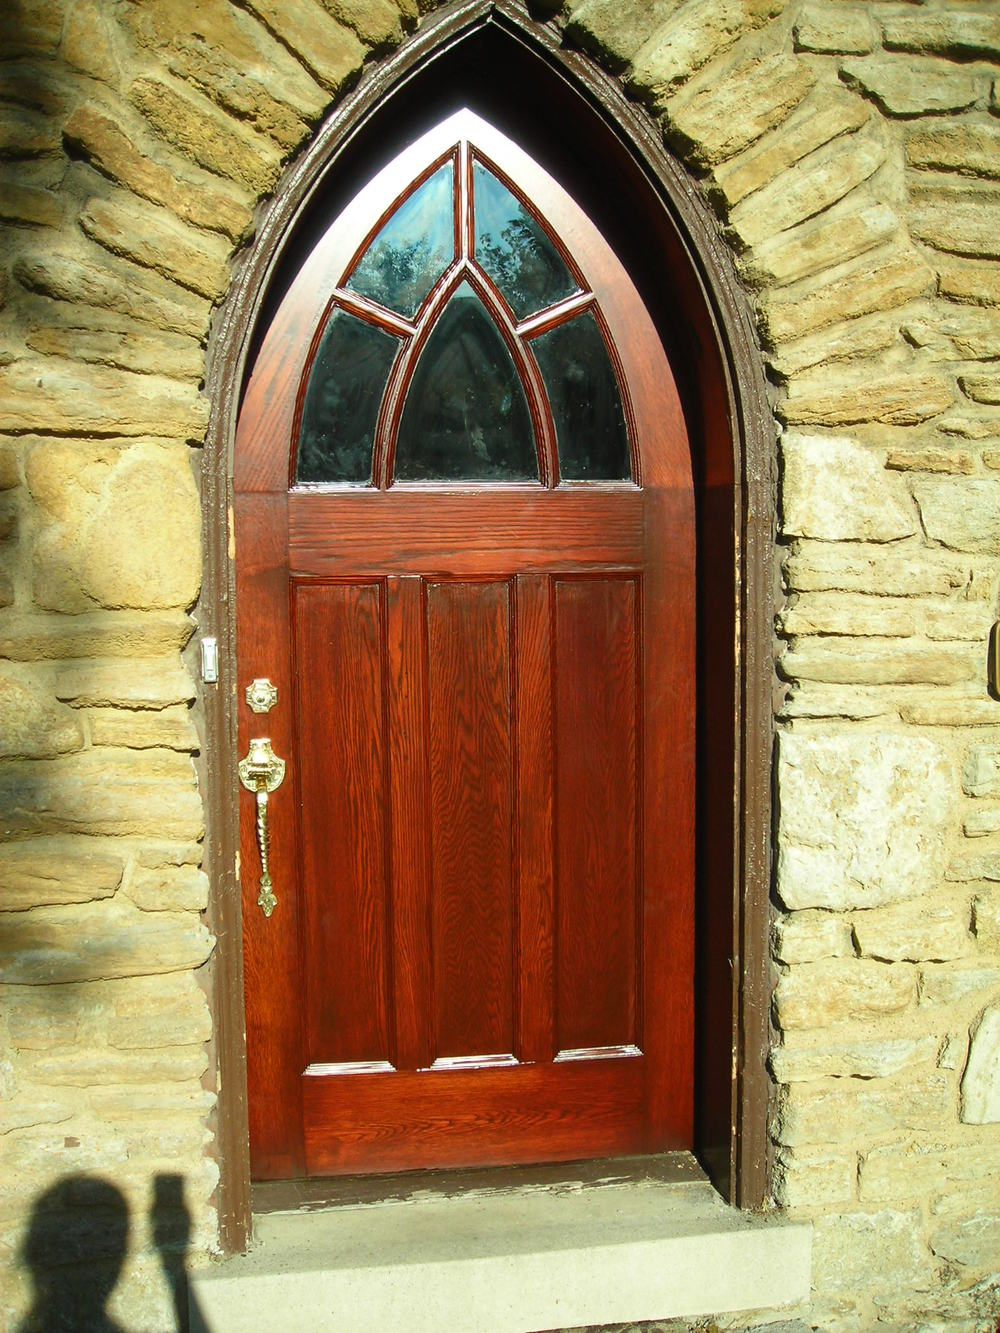 exterior-door-wood-wooden-refinish-refinishing-weathered & Door Renew | Wood Door Restoration